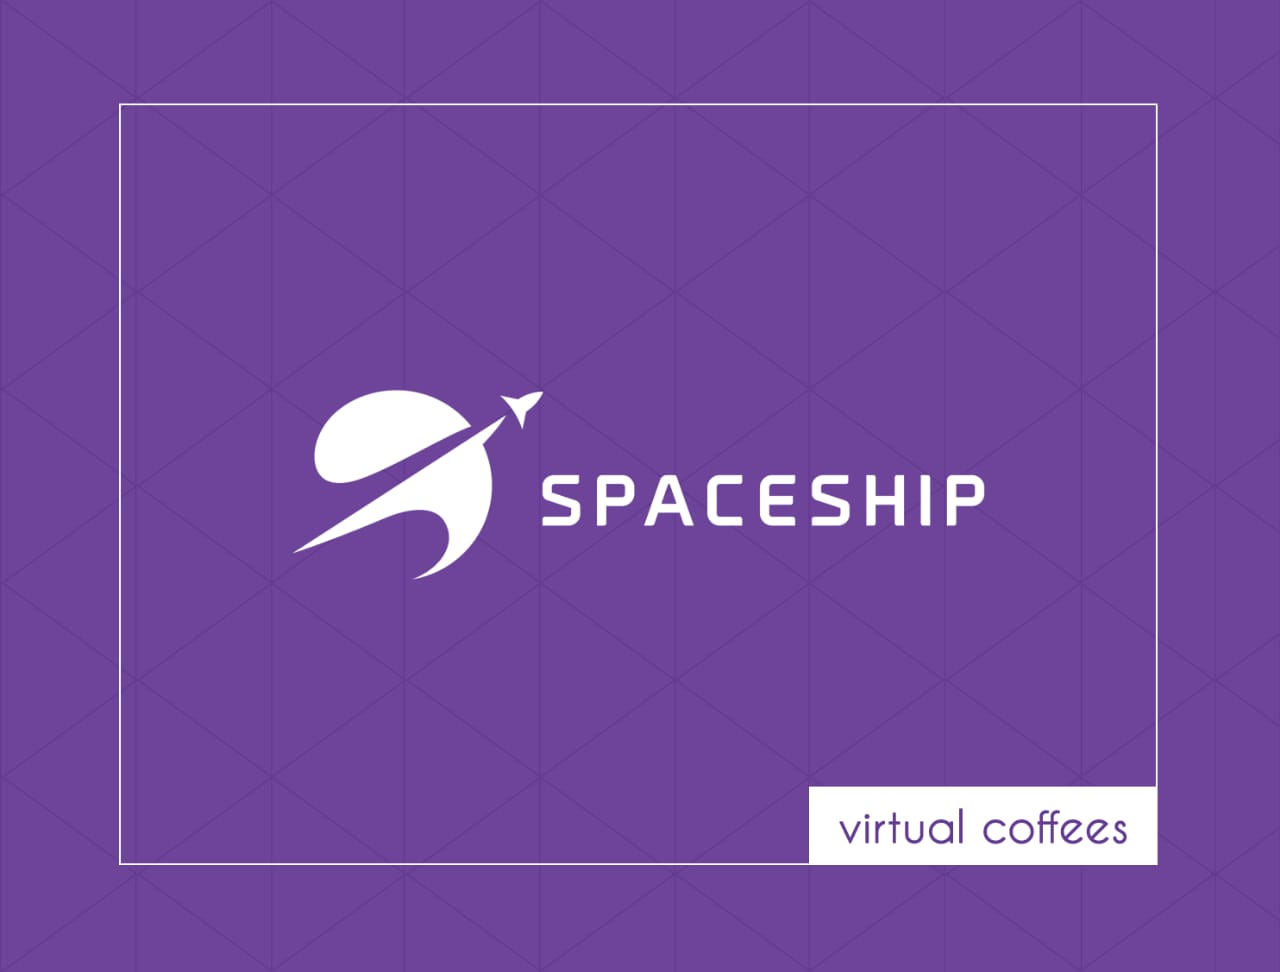 Aeozo Virtual Coffee with Spaceship